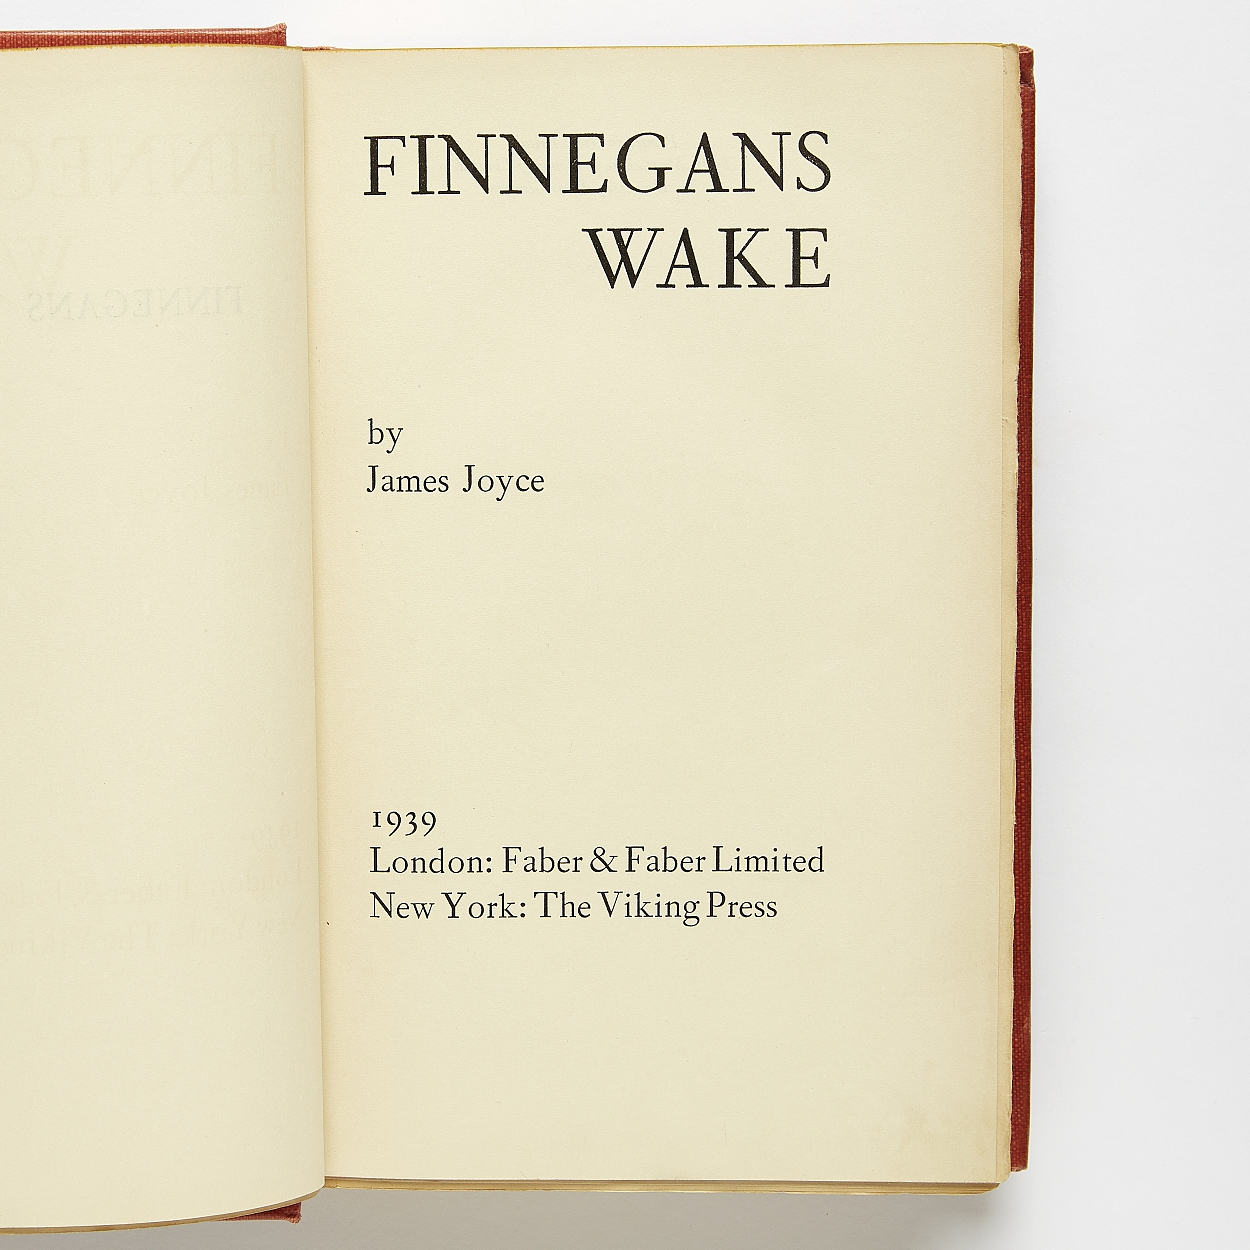 Signed copy of Joyce Finnegans Wake first edition